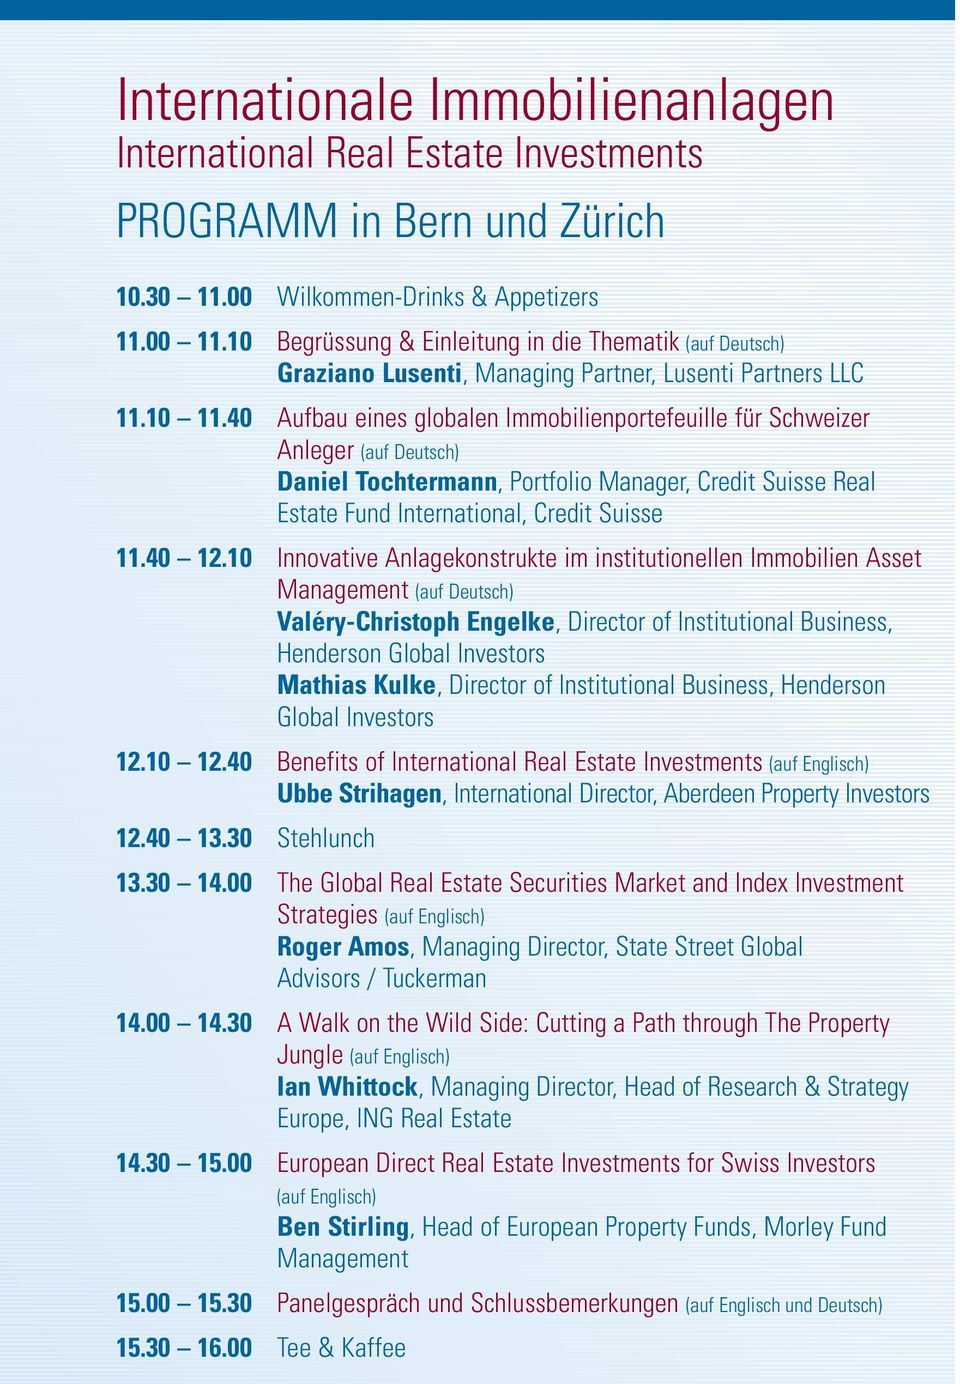 40 Aufbau eines globalen Immobilienportefeuille für Schweizer Anleger (auf Deutsch) Daniel Tochtermann, ortfolio Manager, Credit Suisse Real Estate Fund International, Credit Suisse 11.40 12.